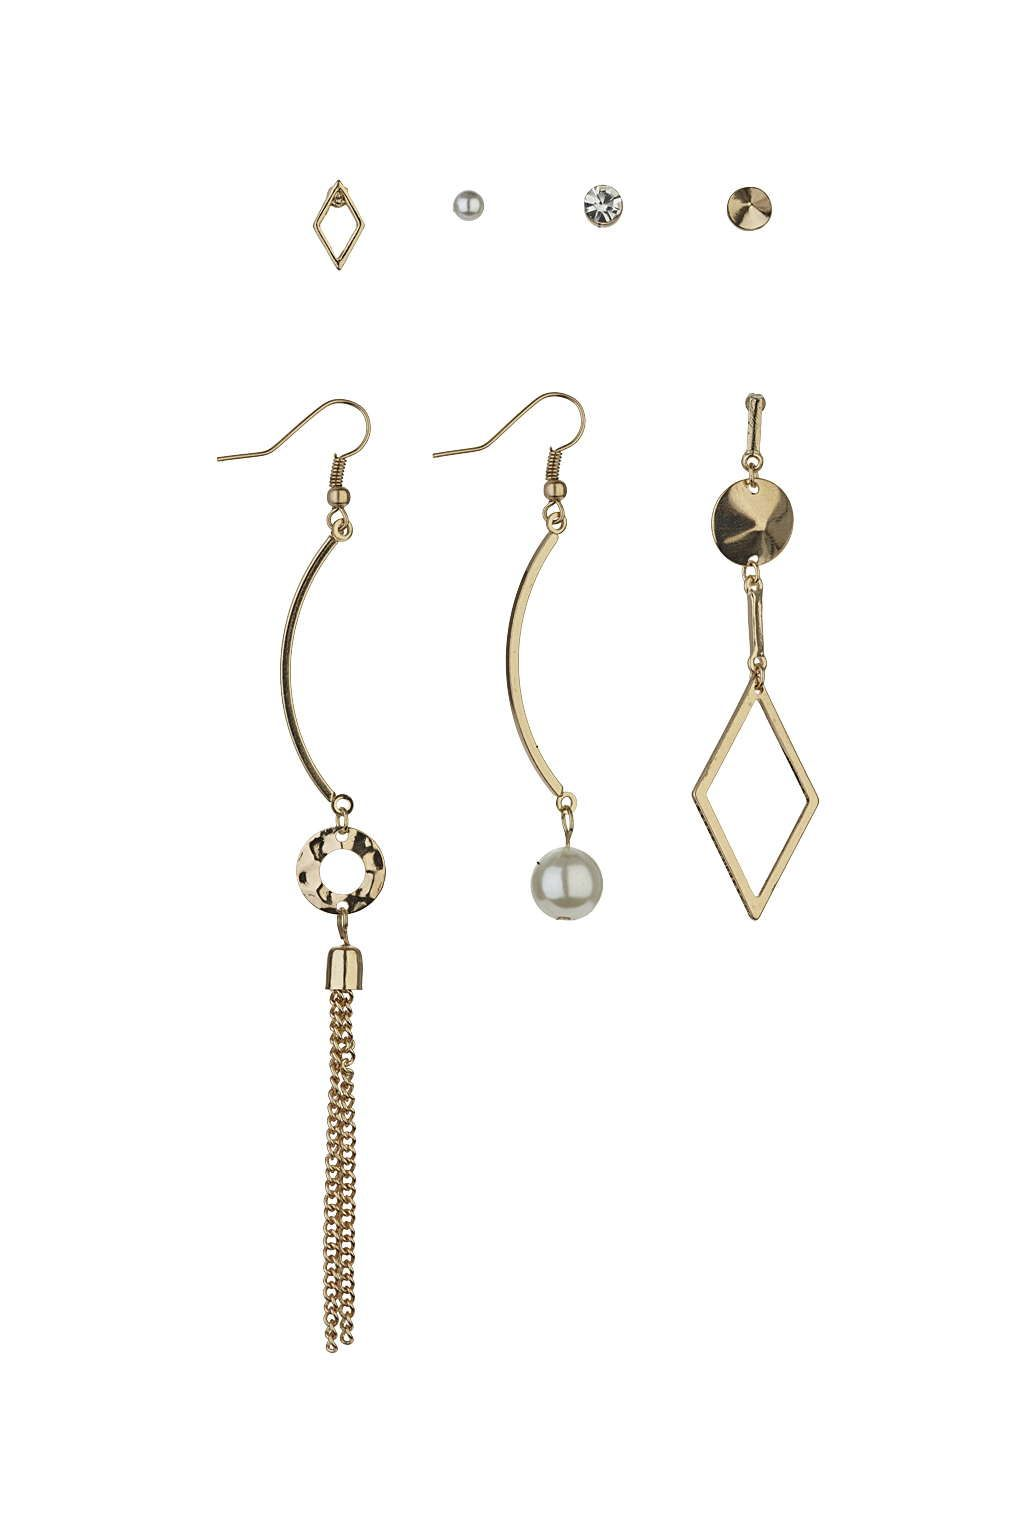 earrings stud alexis bittar mismatched